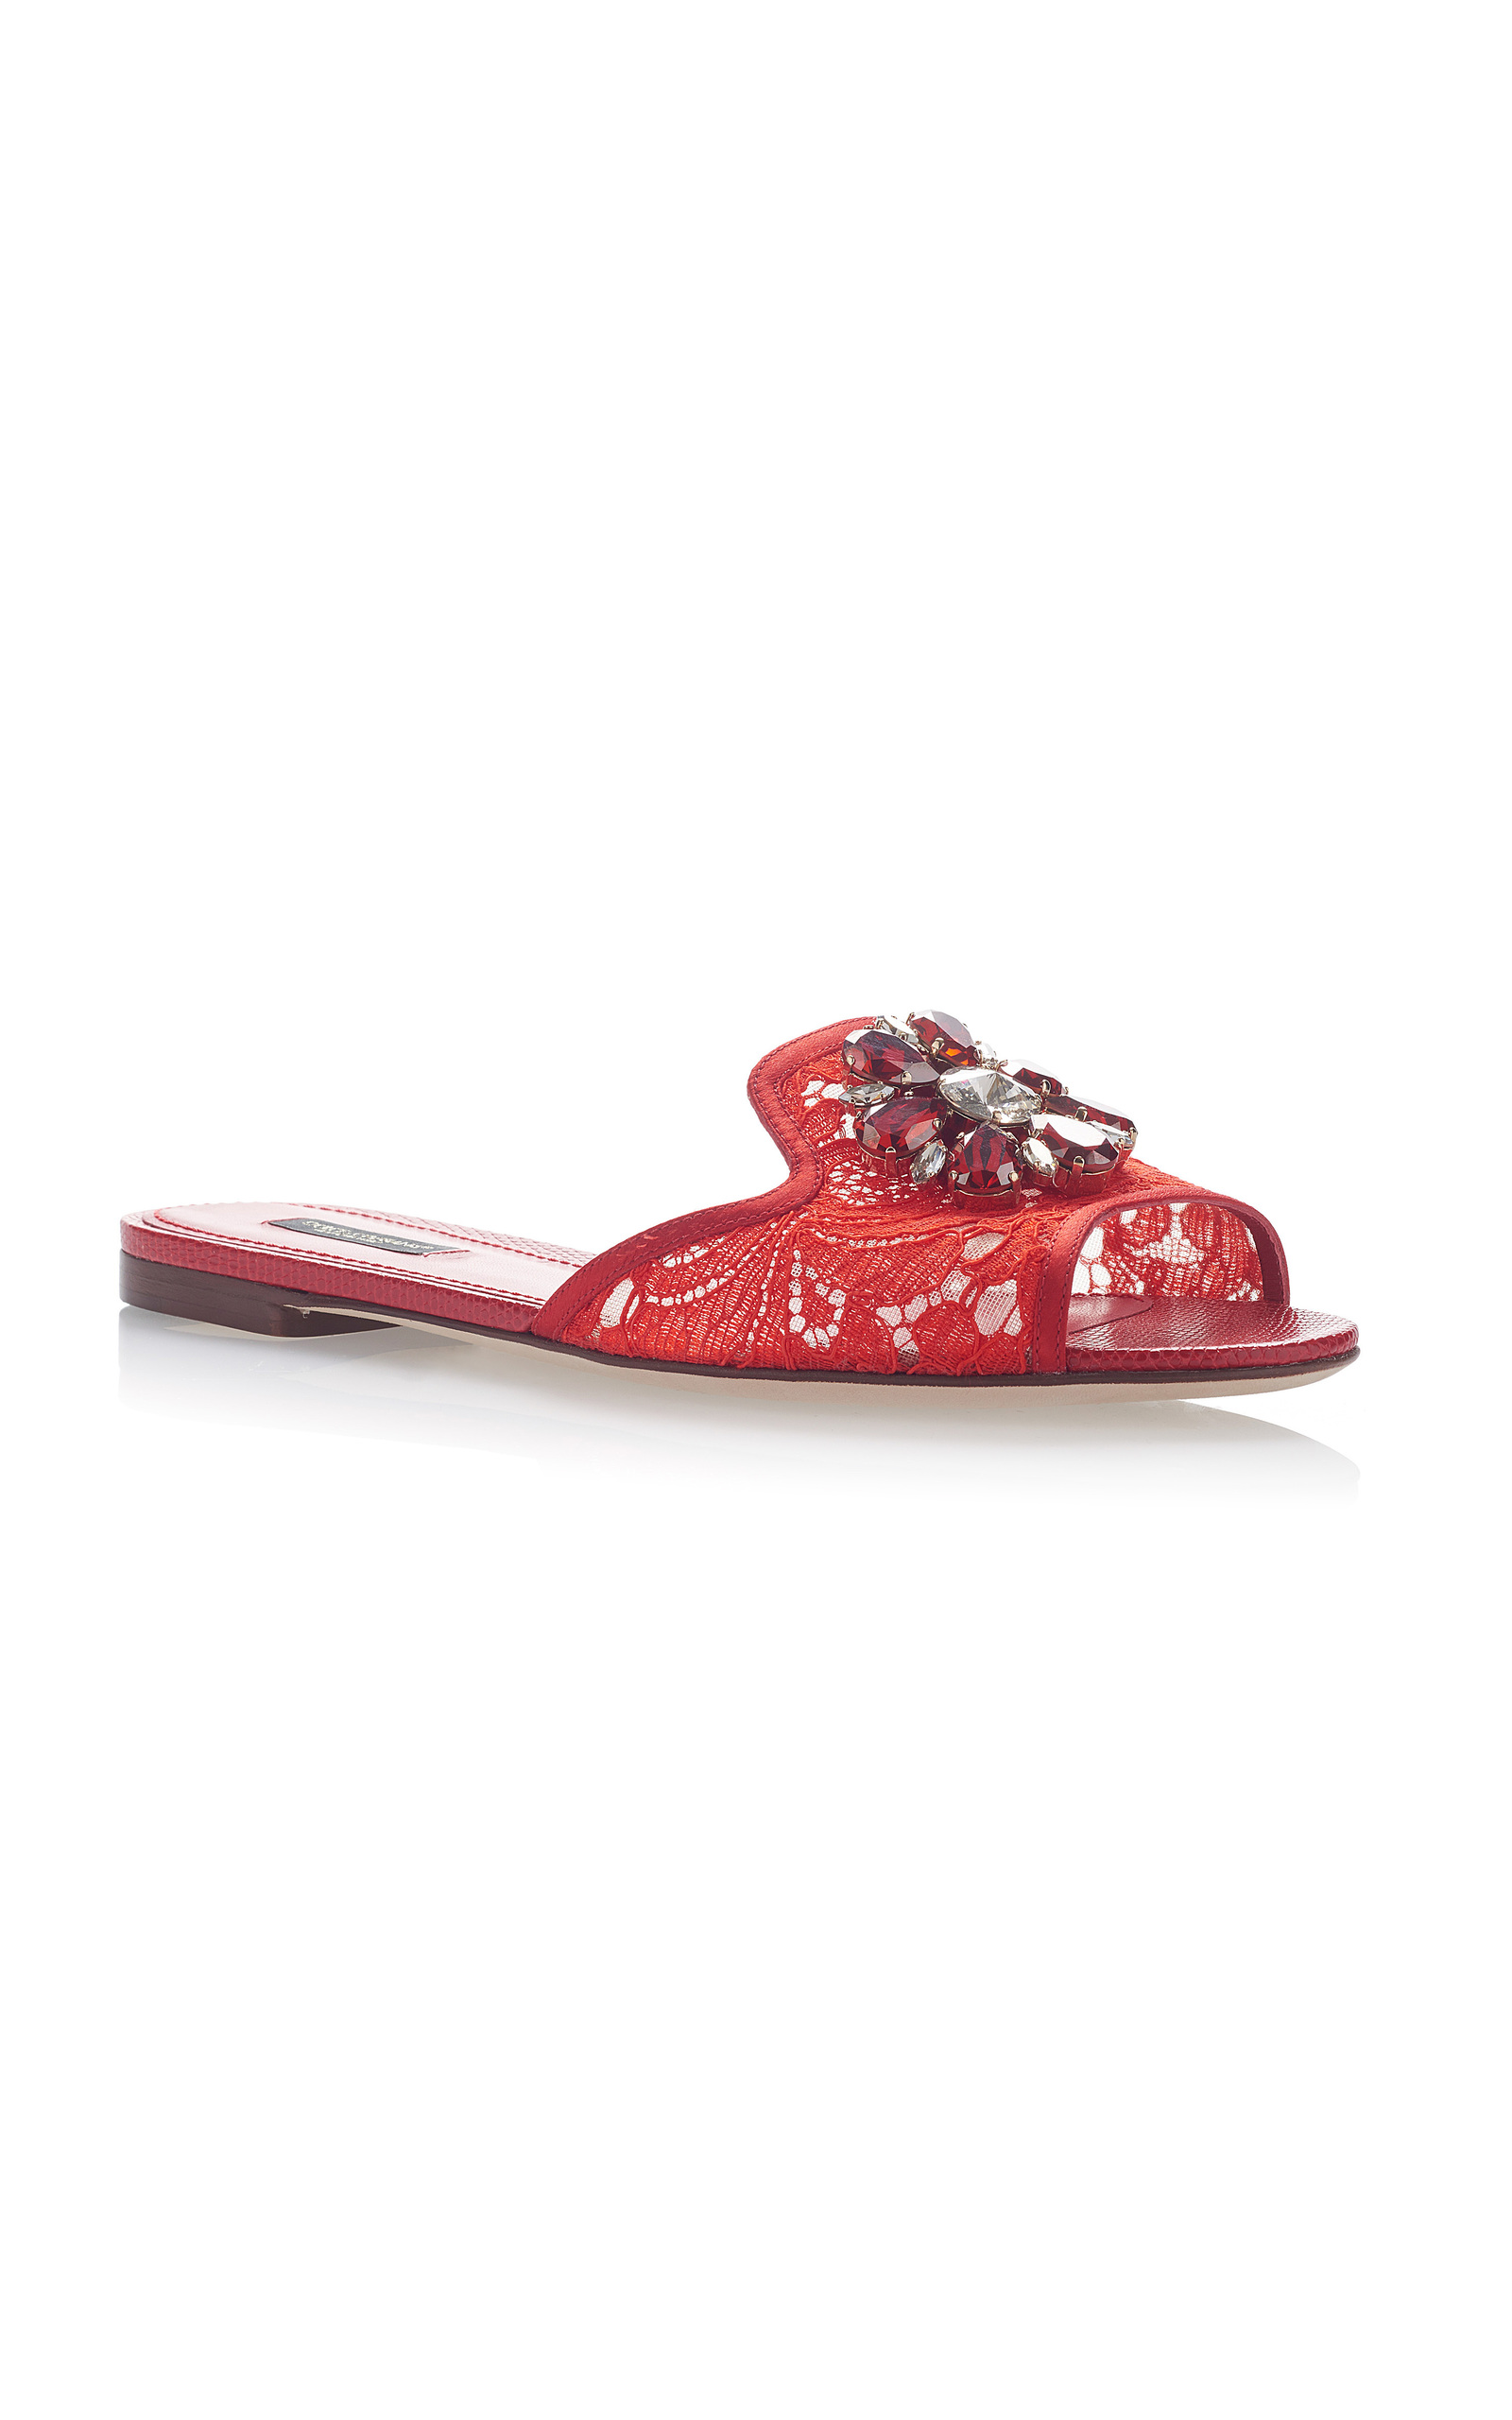 Dolce & Gabbana Embellished Leather-Trimmed Lace Slides